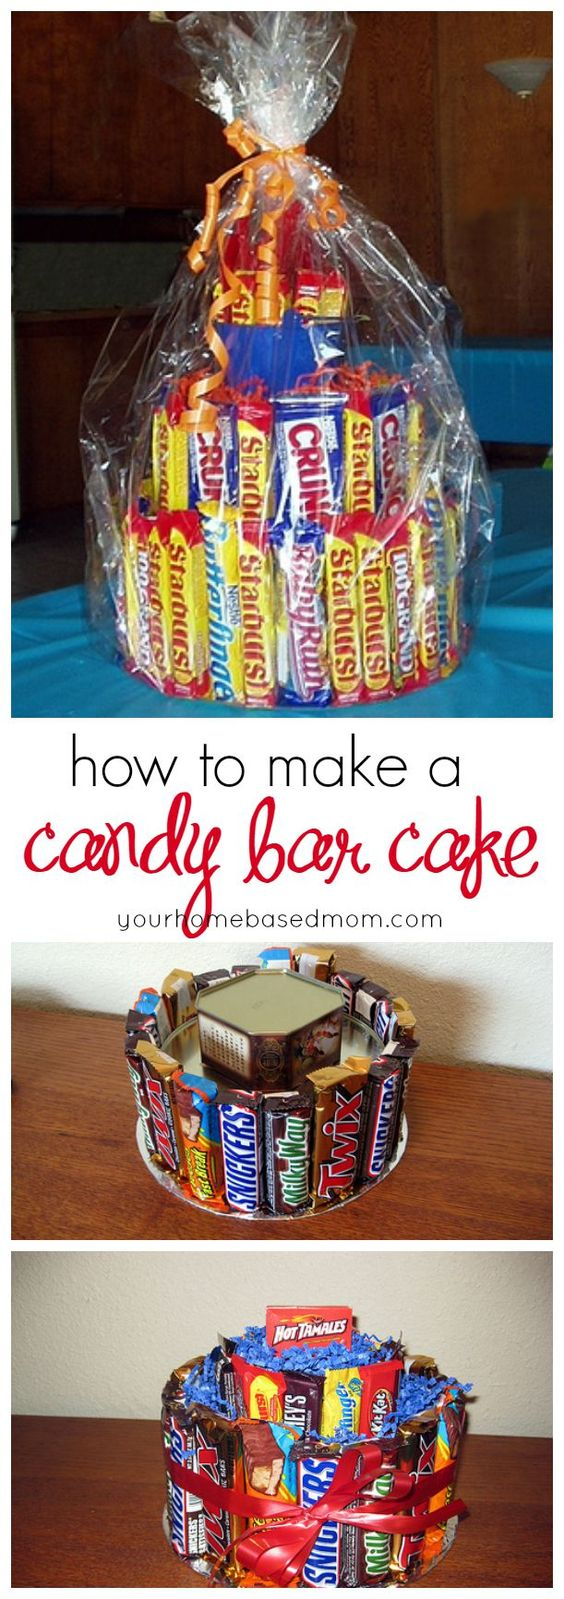 How to Make a Candy Bar Cake Birthdays, Candy bars and Cakes